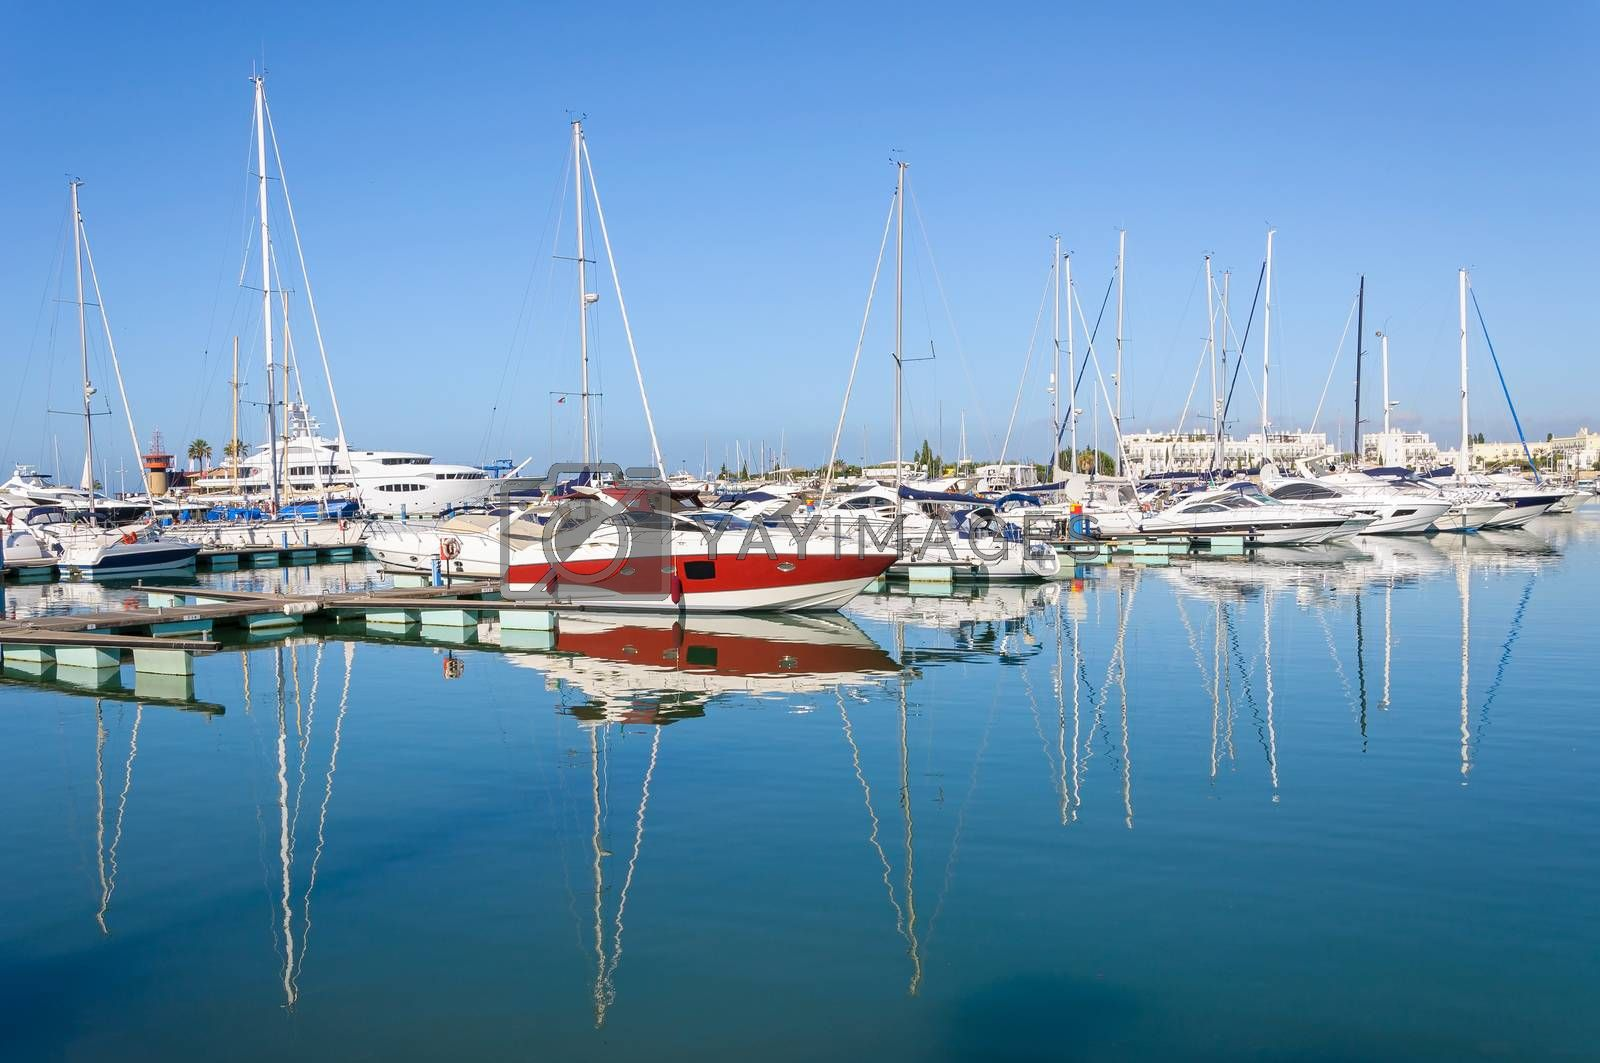 Luxury yachts moored in the port of Vilamoura, Algarve, Portugal